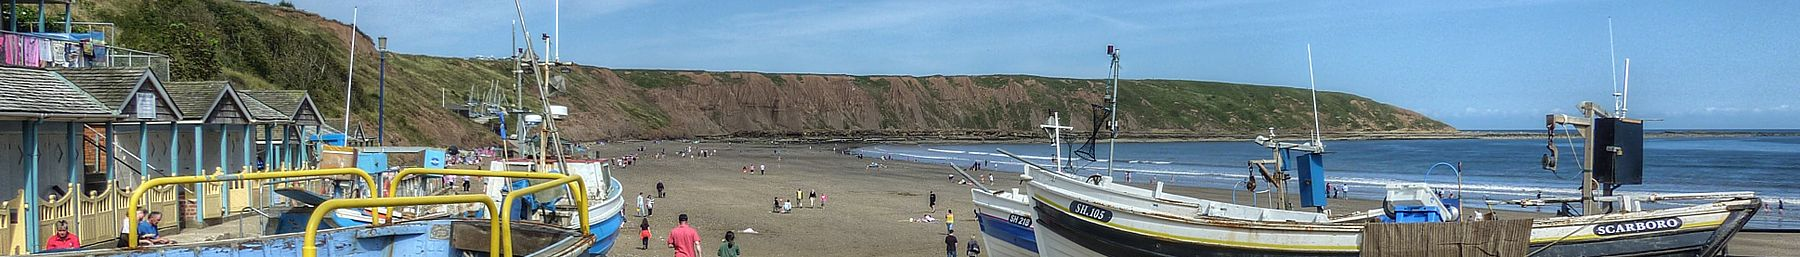 Filey slipway